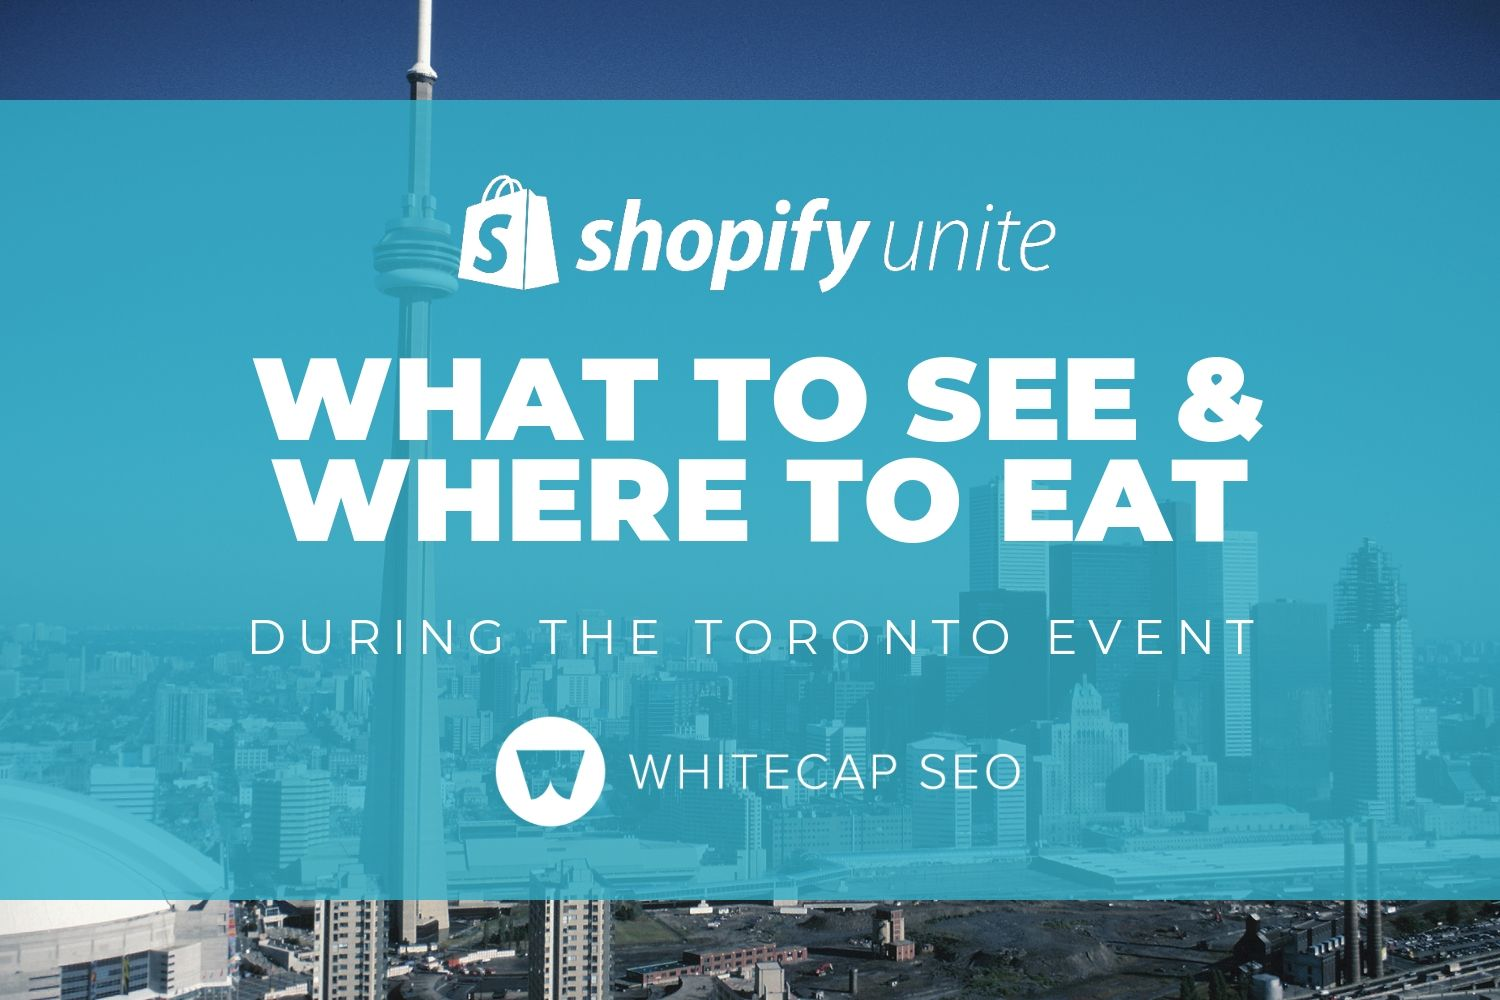 Shopify Unite: What to See & Eat During the Toronto Event